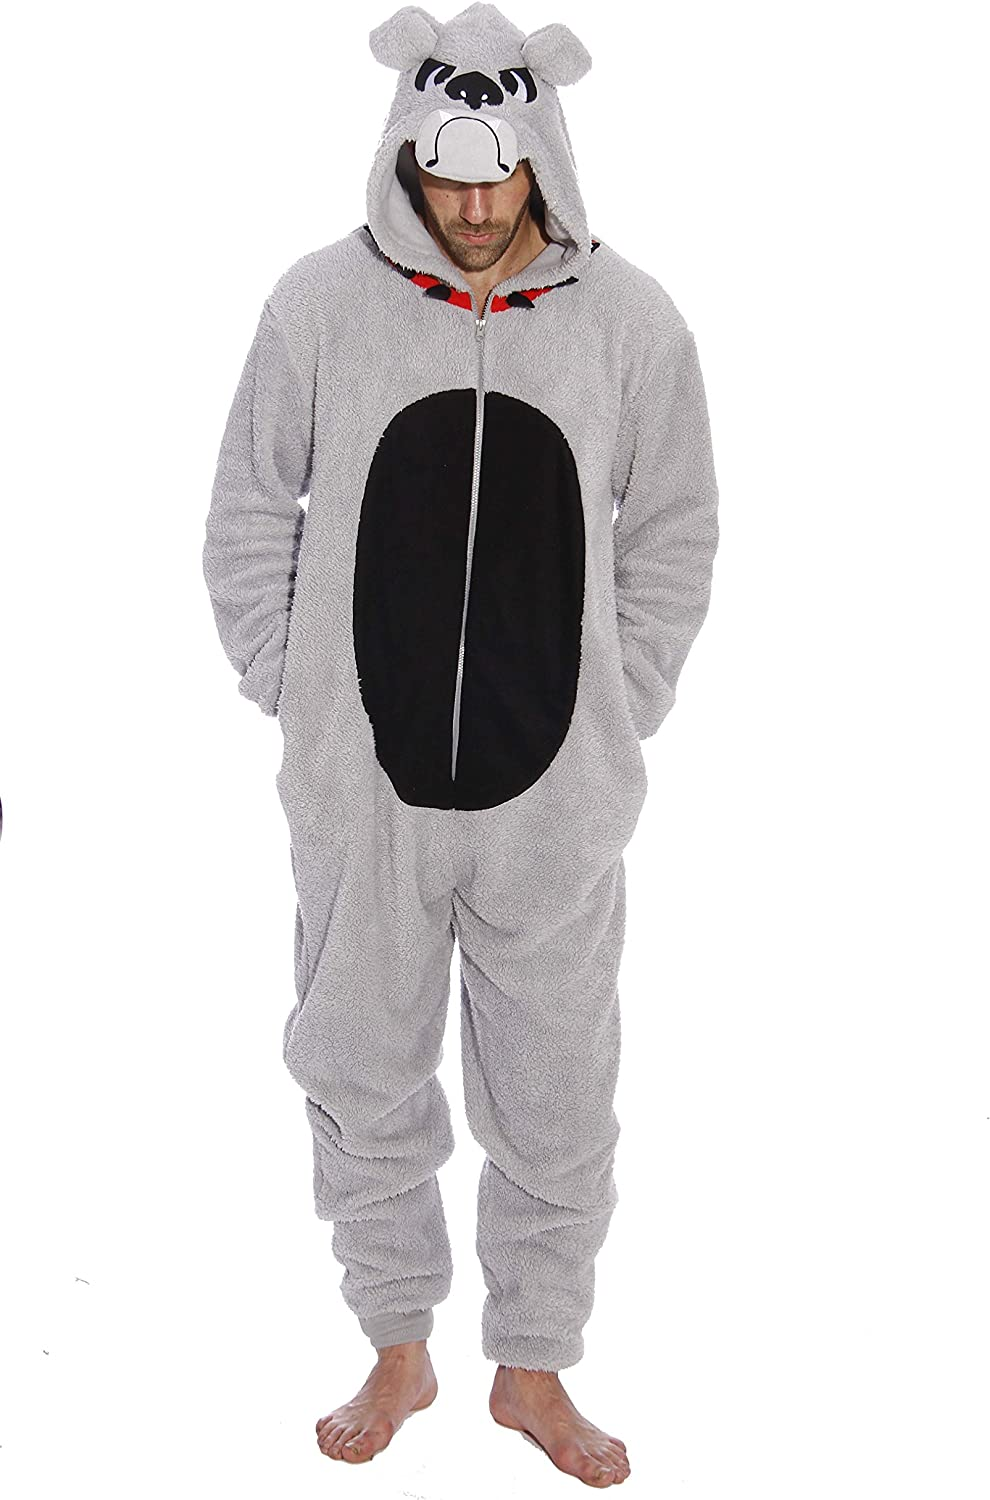 #followme Bulldog Adult Onesie Pajamas